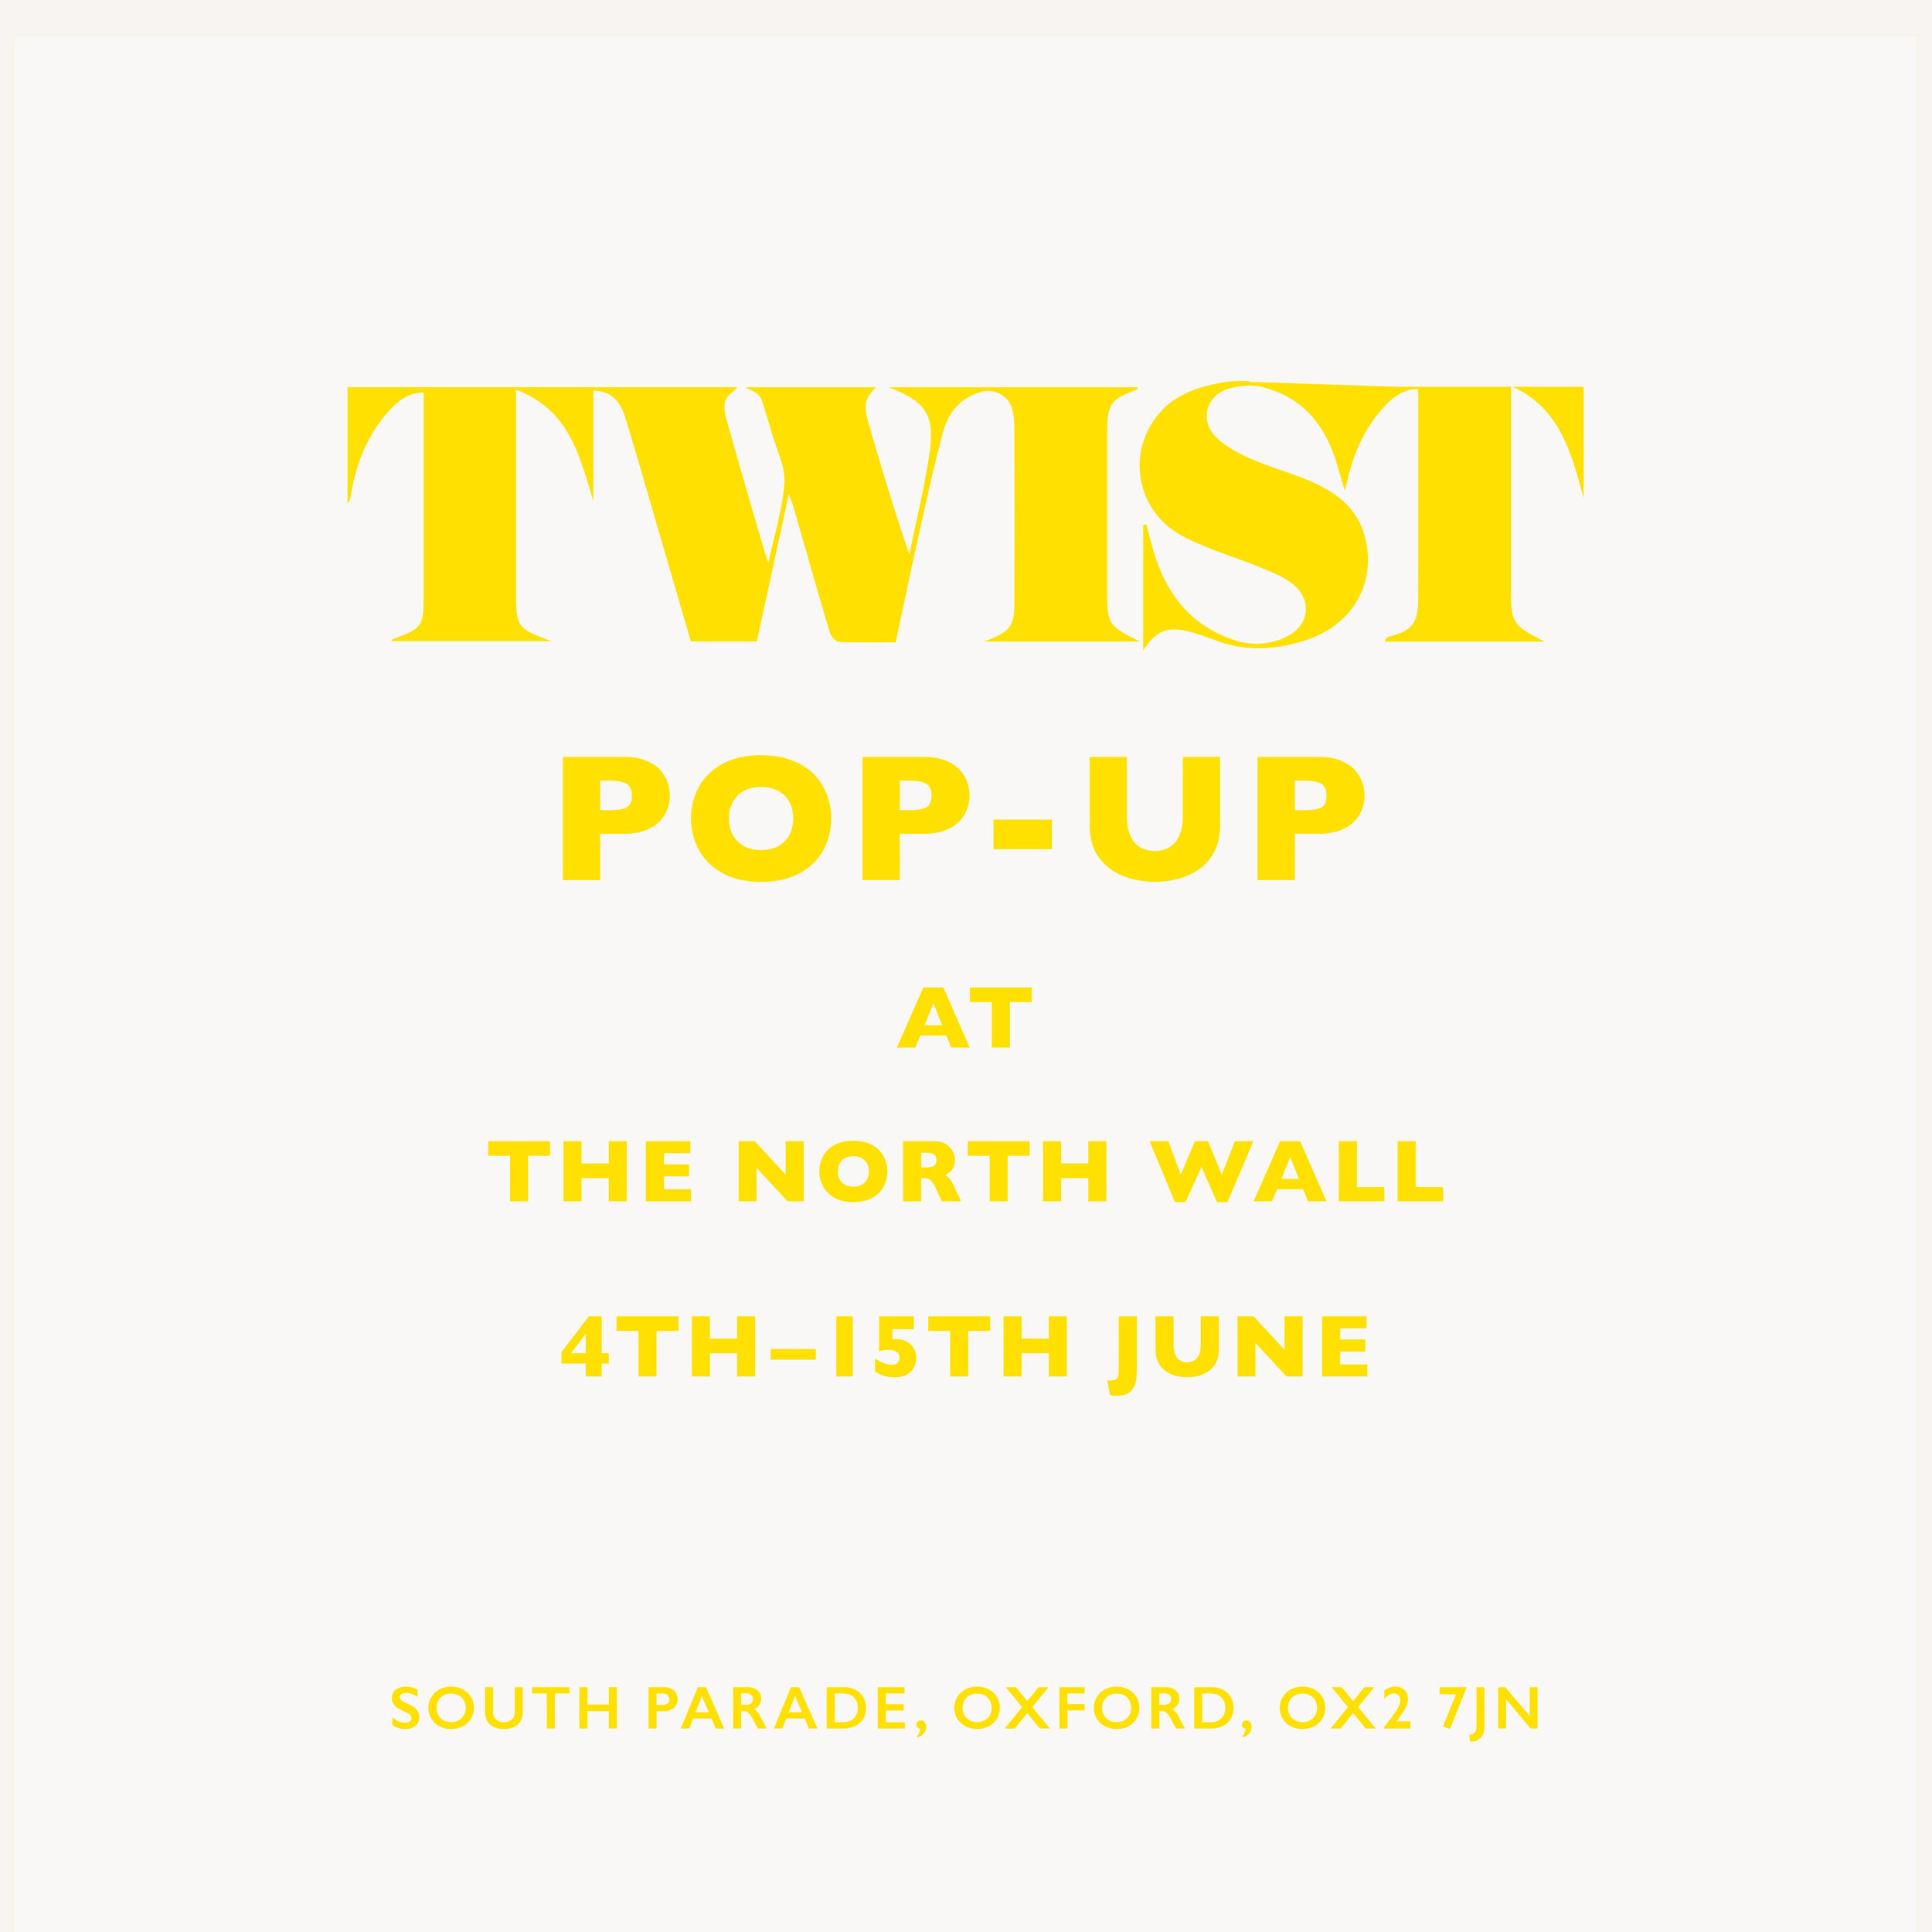 Twist+2019+Pop-up_insta+ad_1080x1080p2-1.jpg